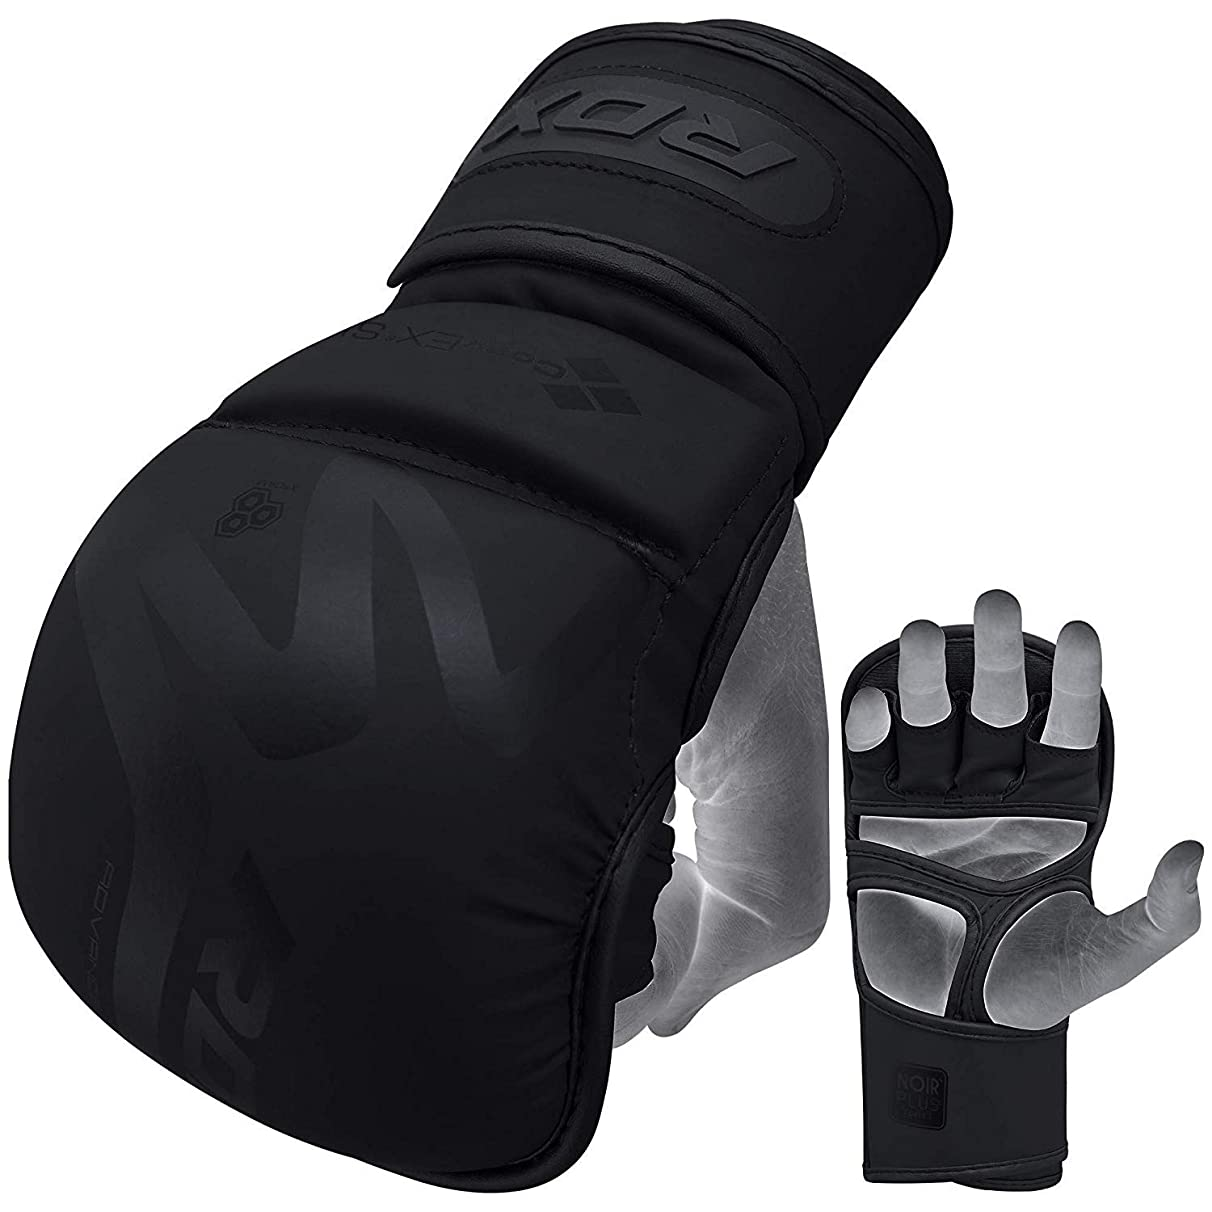 RDX MMA Gloves for Martial Arts Training & Sparring | Y-Volar Palm Matte Black Convex Skin Leather Grappling Mitts |Great for Kickboxing, Muay Thai, Punching Bag & Cage Fighting